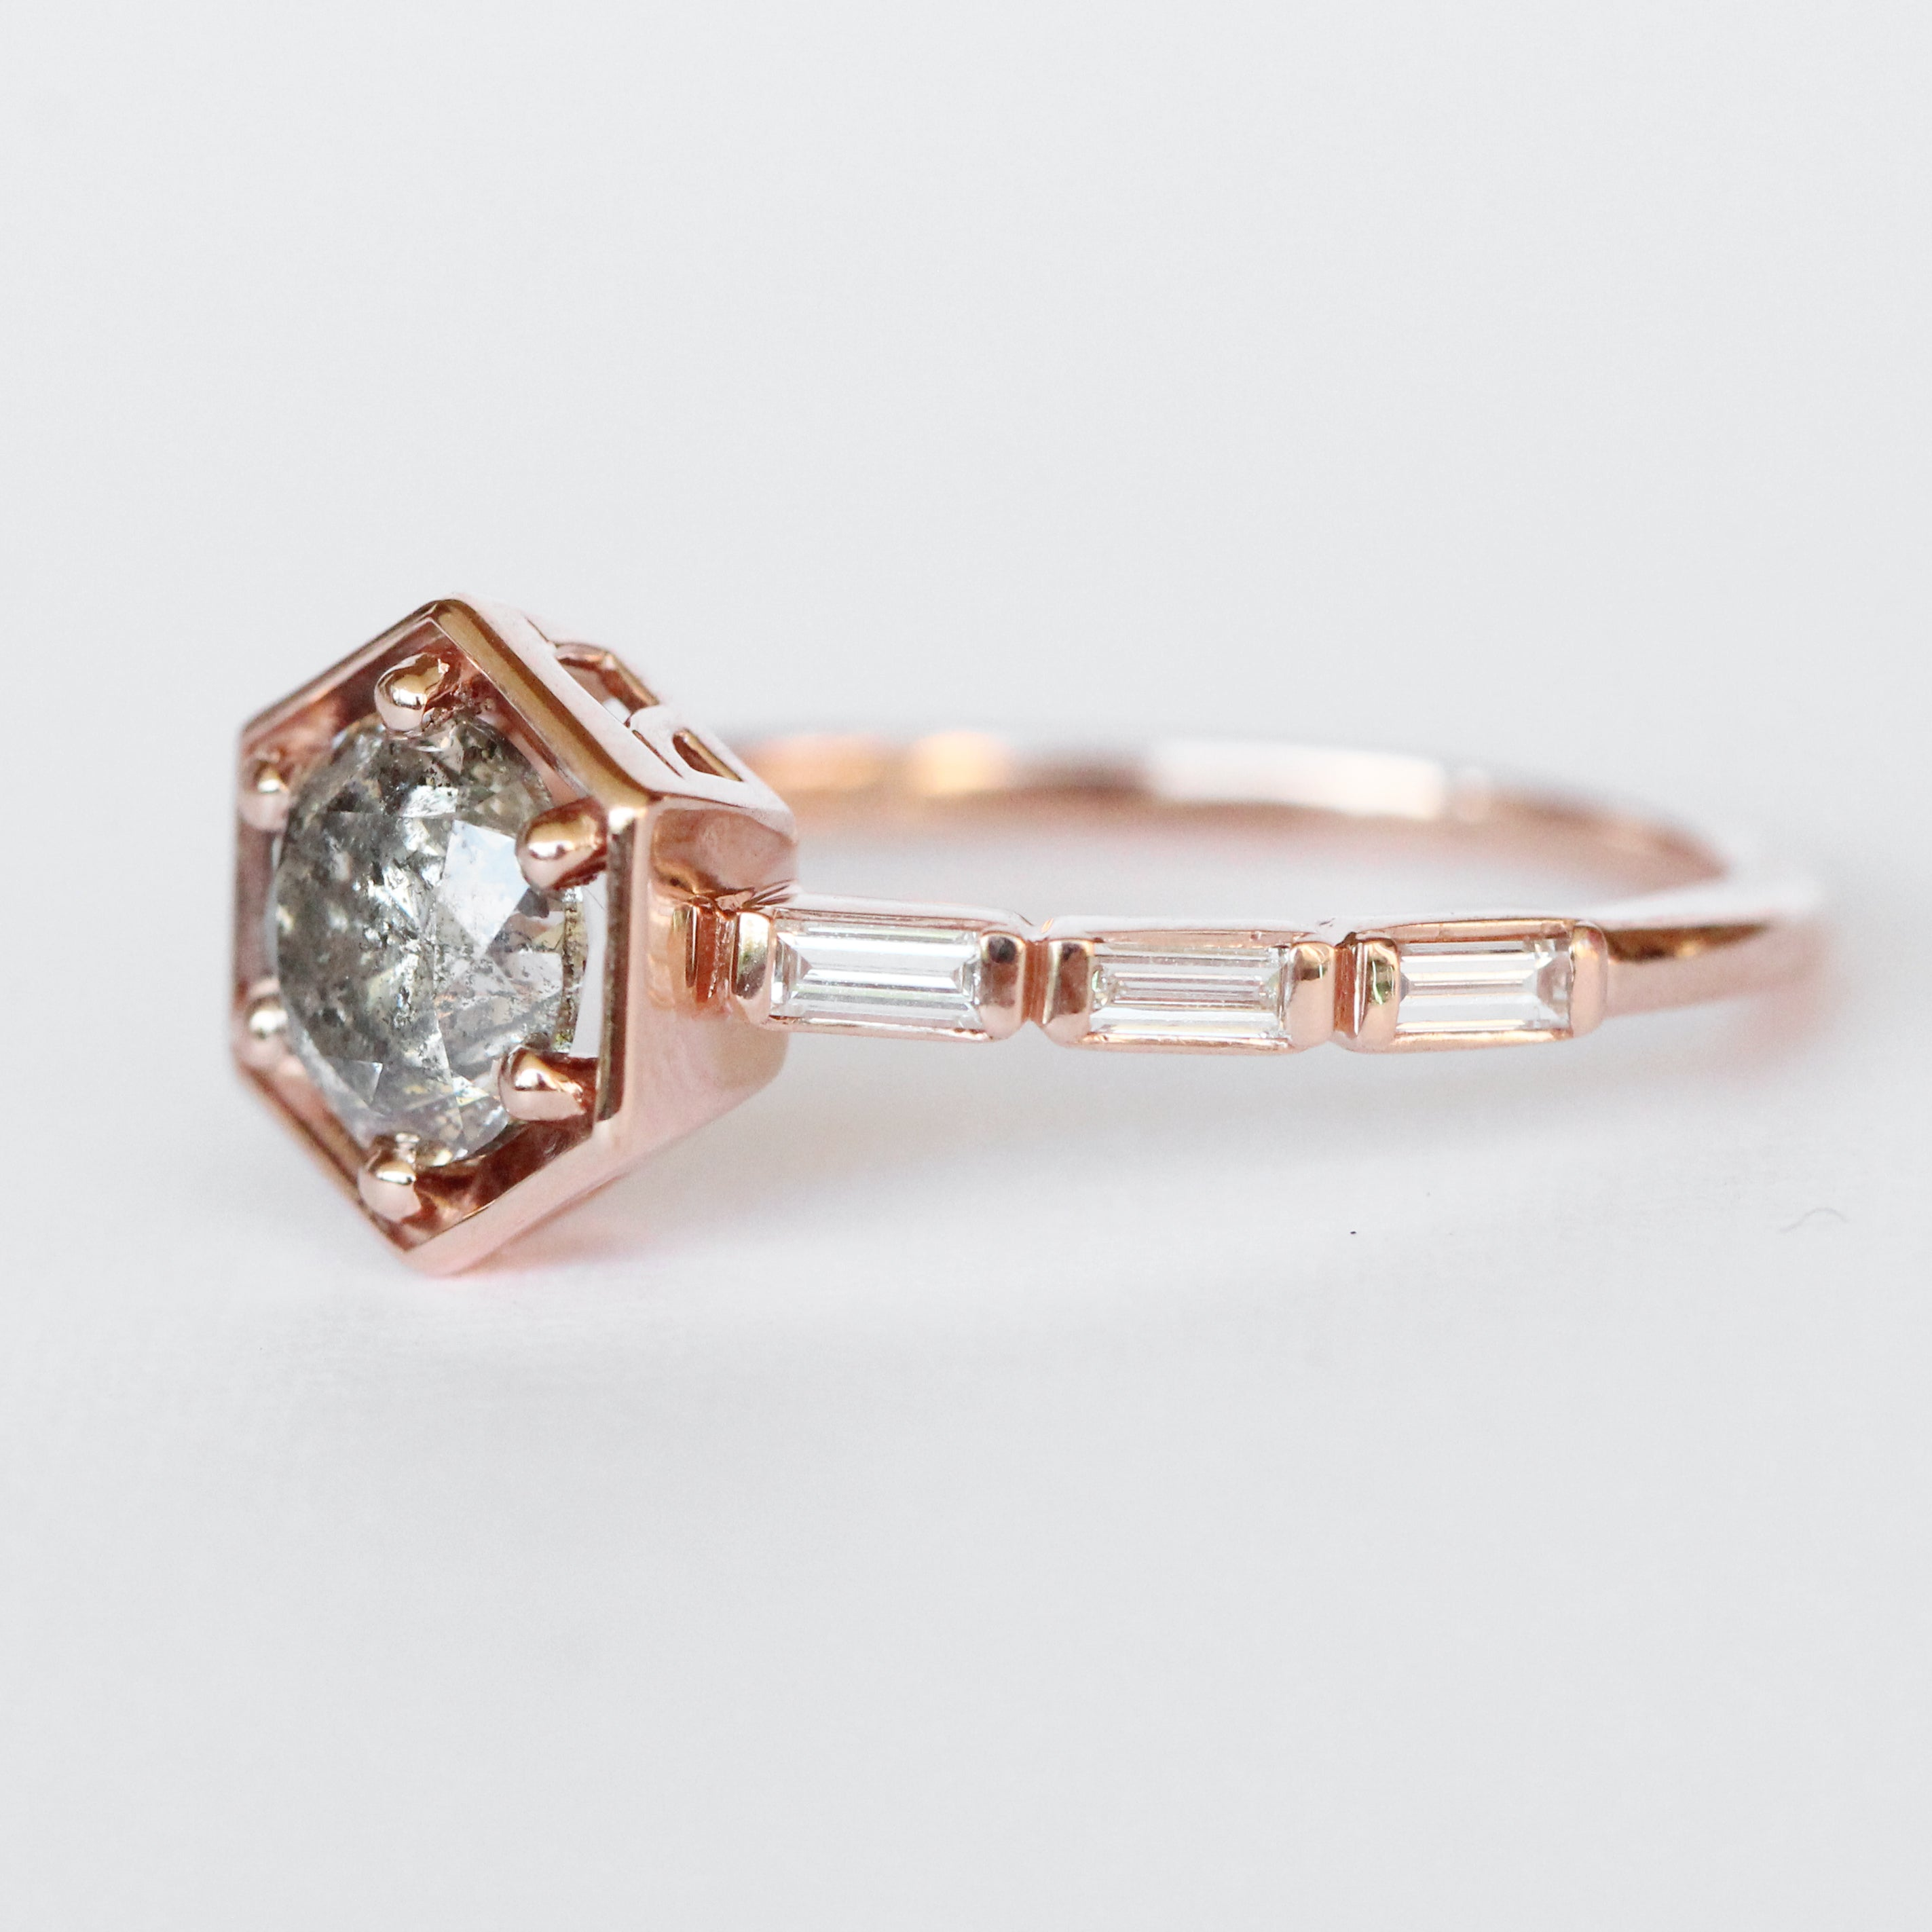 Lennen Ring with a .90 ct Celestial and Diamond Accents in 10k Rose Gold - Ready to Size and Ship - Celestial Diamonds ® by Midwinter Co.